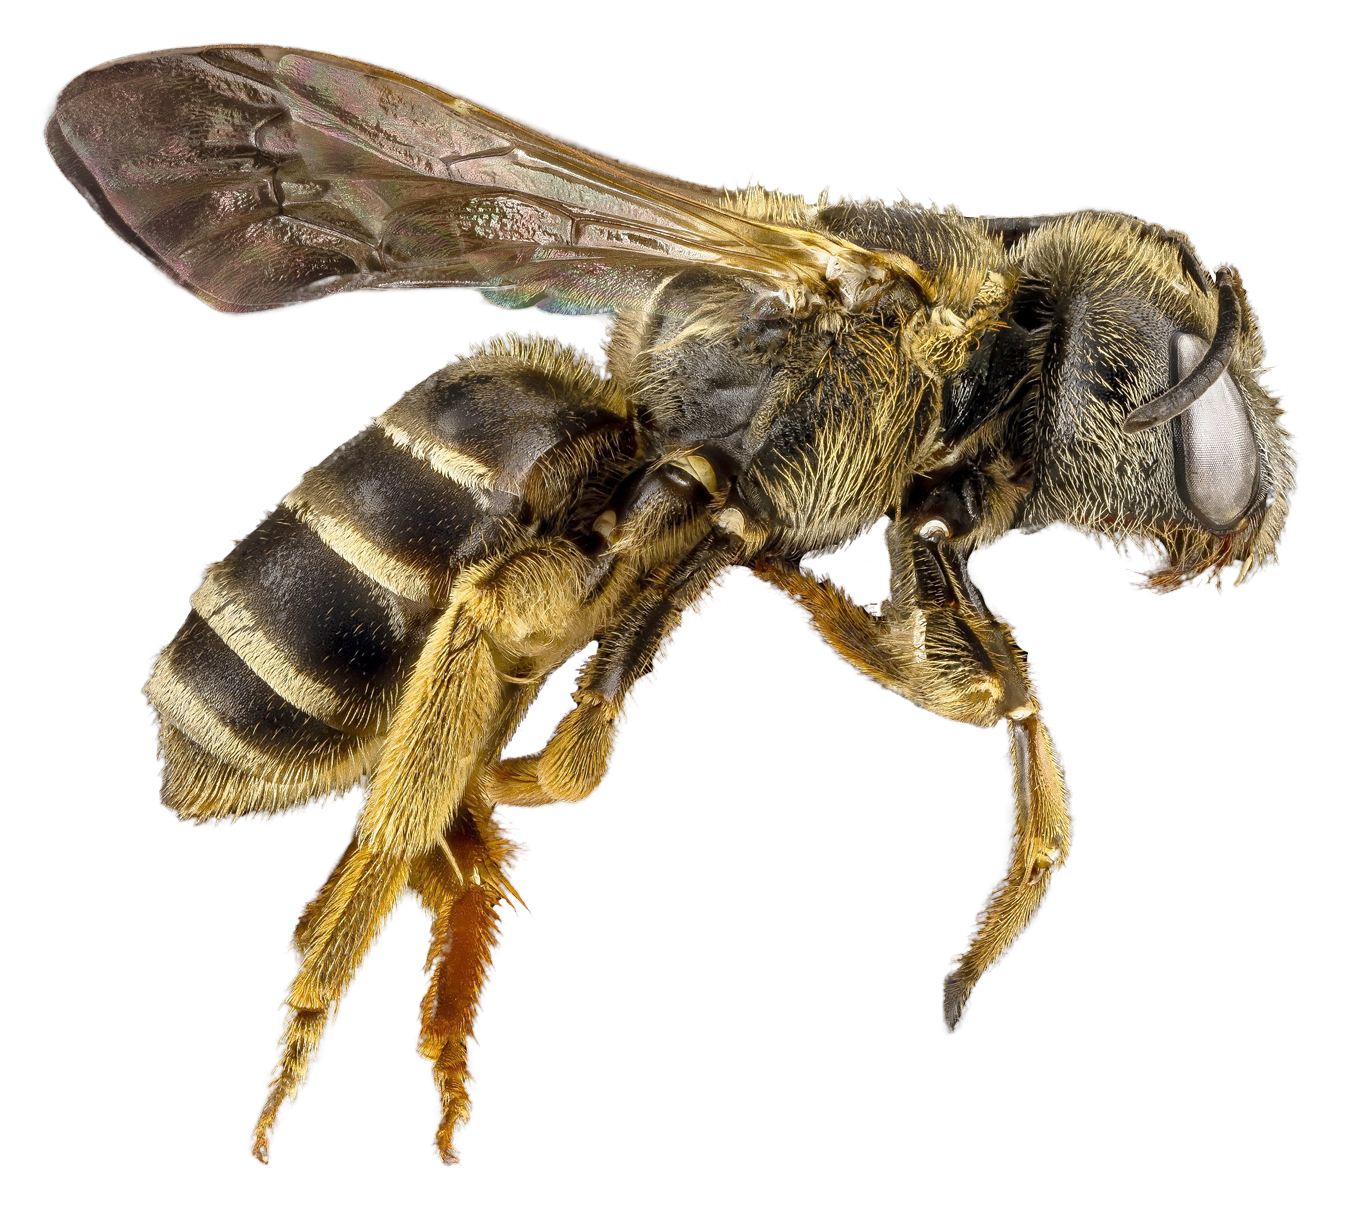 Bee png. Image purepng free transparent picture free stock